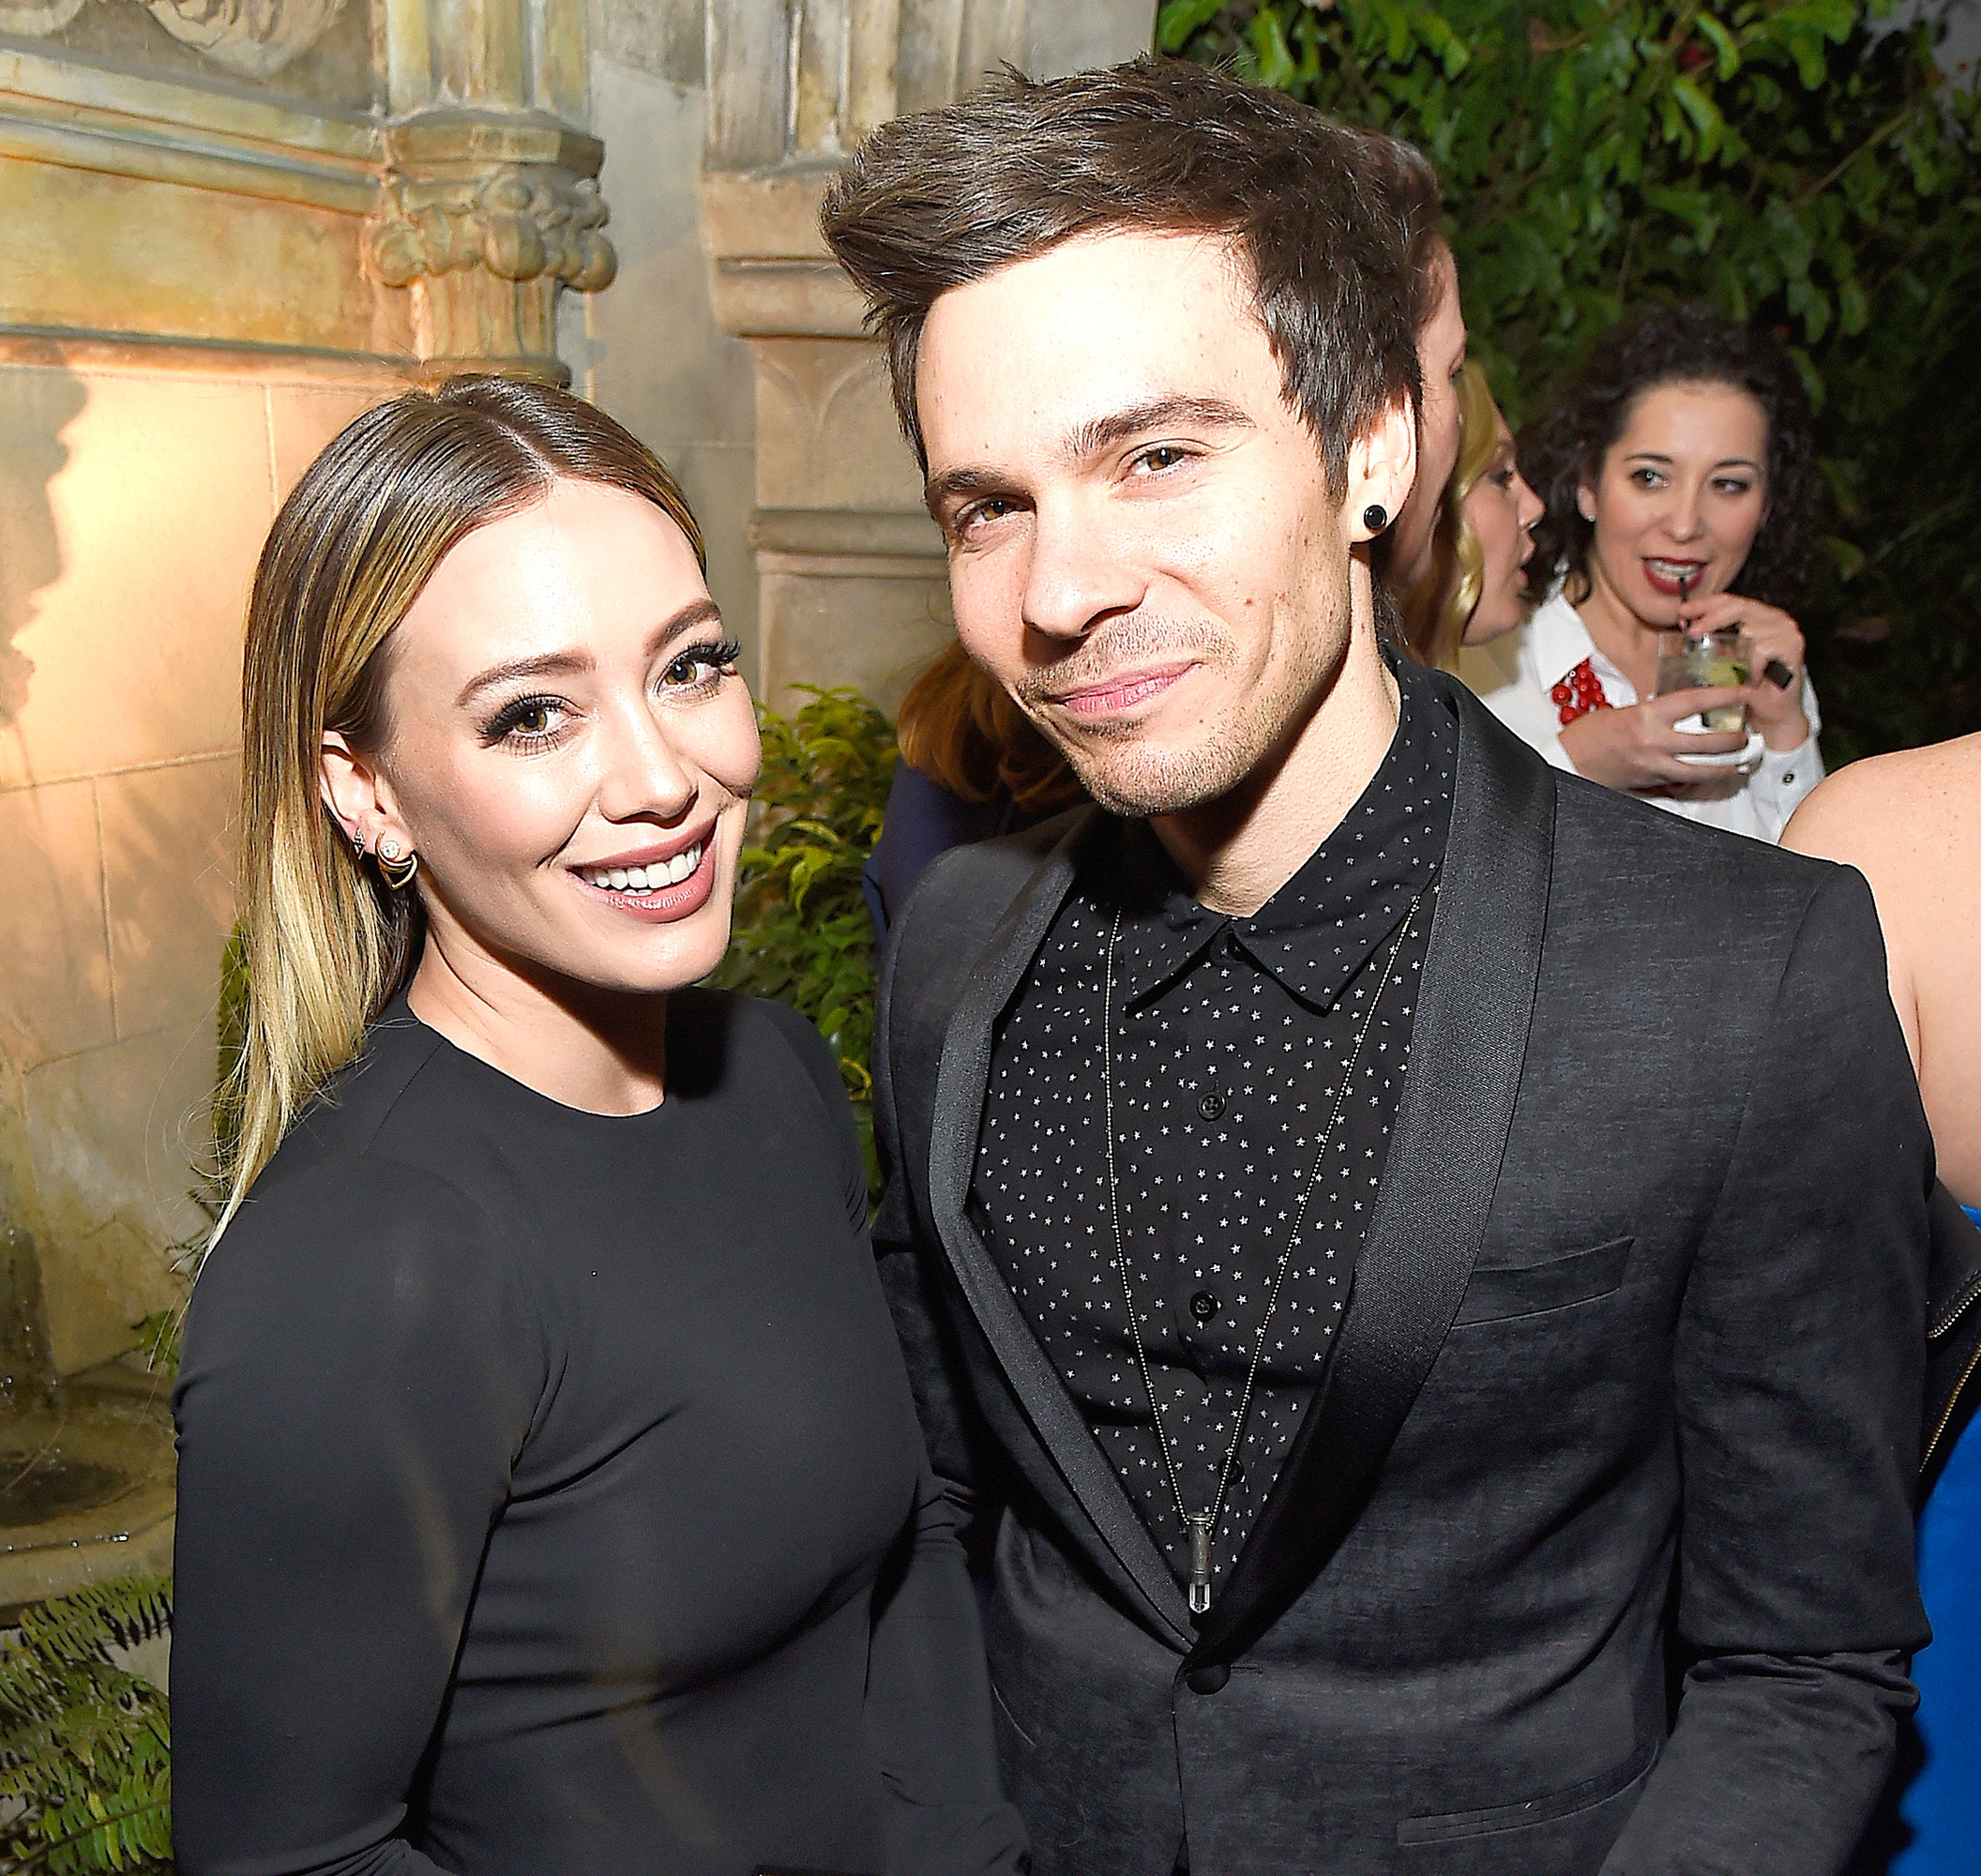 Actress Hilary Duff (left) and musician Matthew Koma attend the Entertainment Weekly Celebration of SAG Award Nominees sponsored by Maybelline New York at Chateau Marmont on January 28, 2017 in Los Angeles, California.